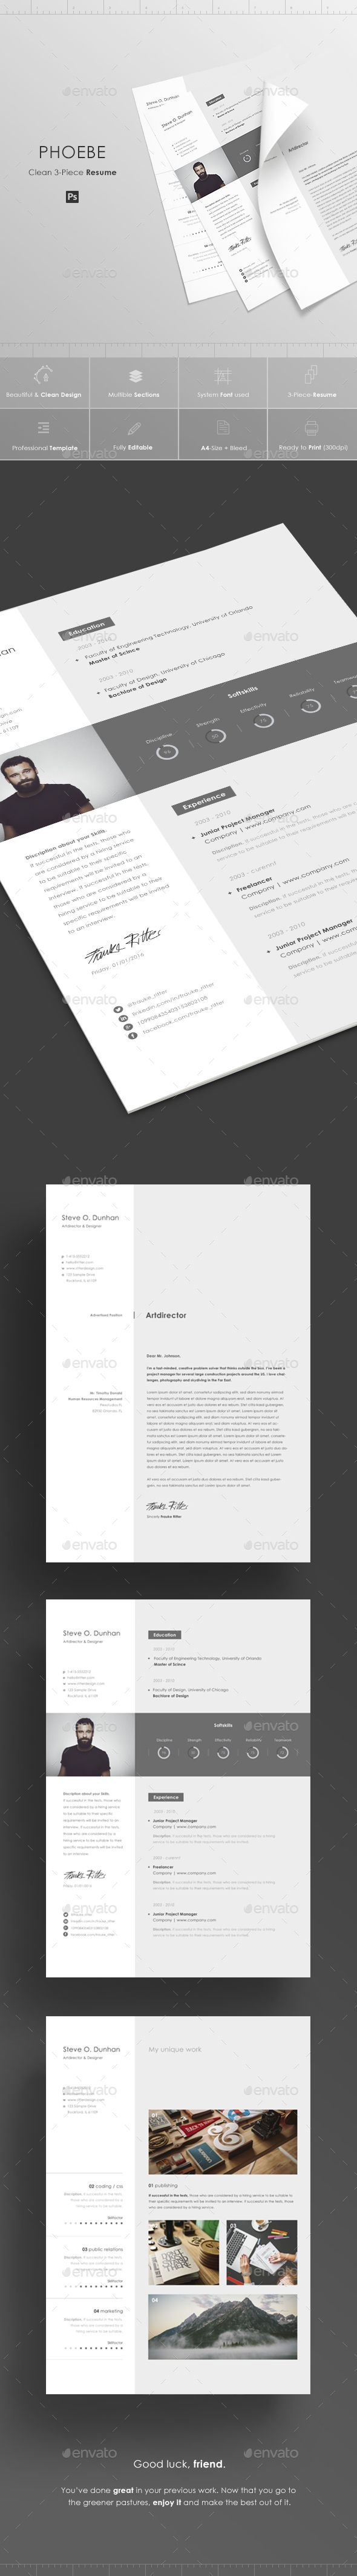 resume for college student with no experience%0A Resume   Resumes  Stationery Download here  https   graphicriver net